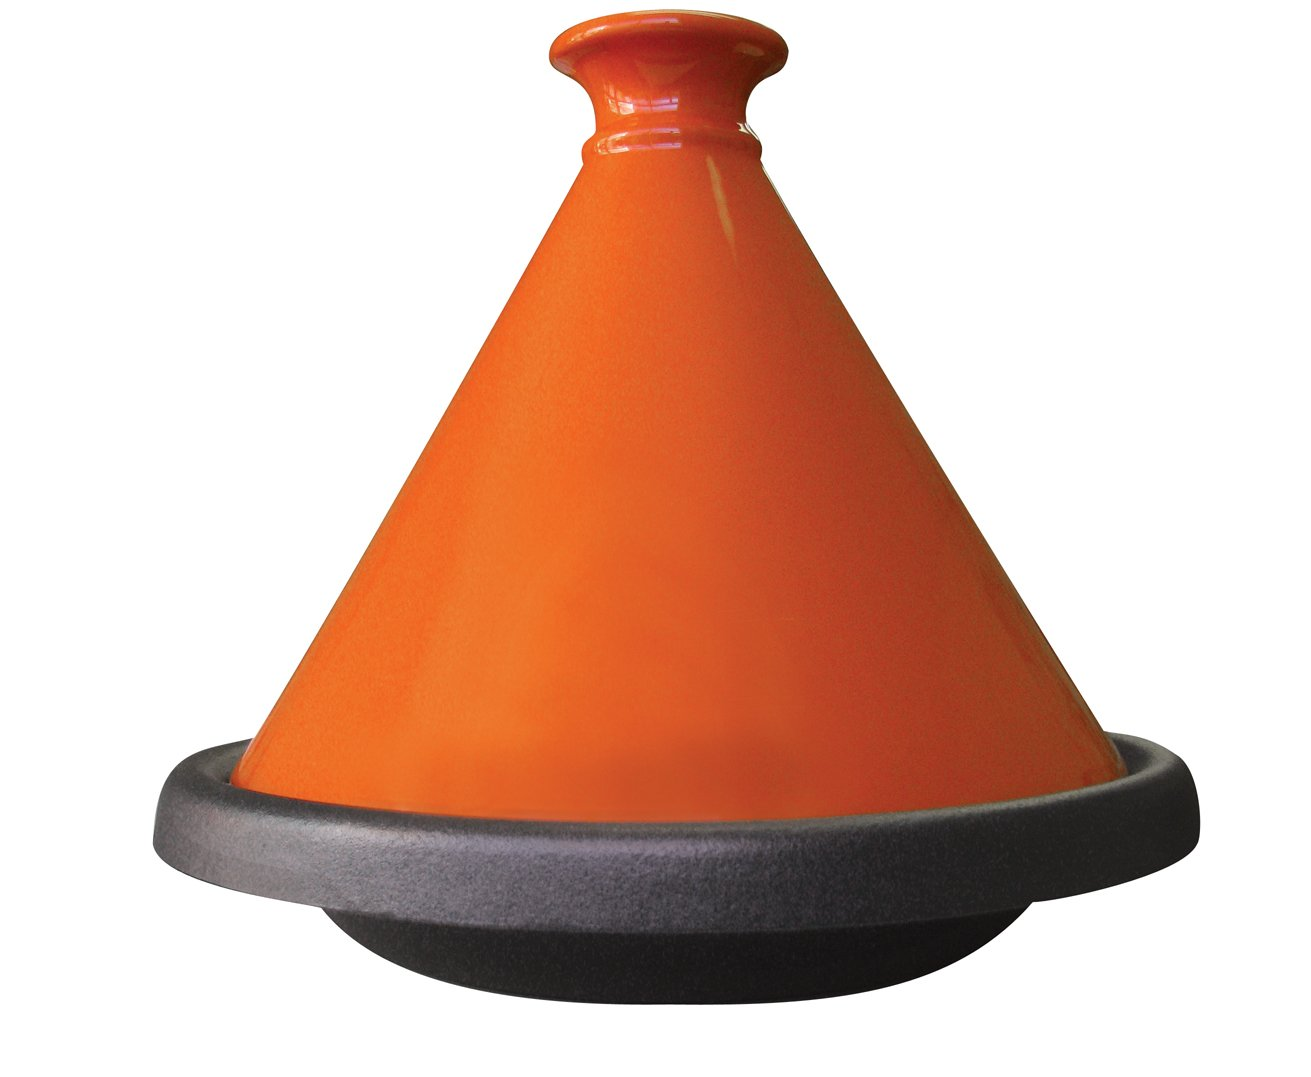 Le Cuistot Enameled Cast Iron 12 Inch Tagine- Bright Orange Orly